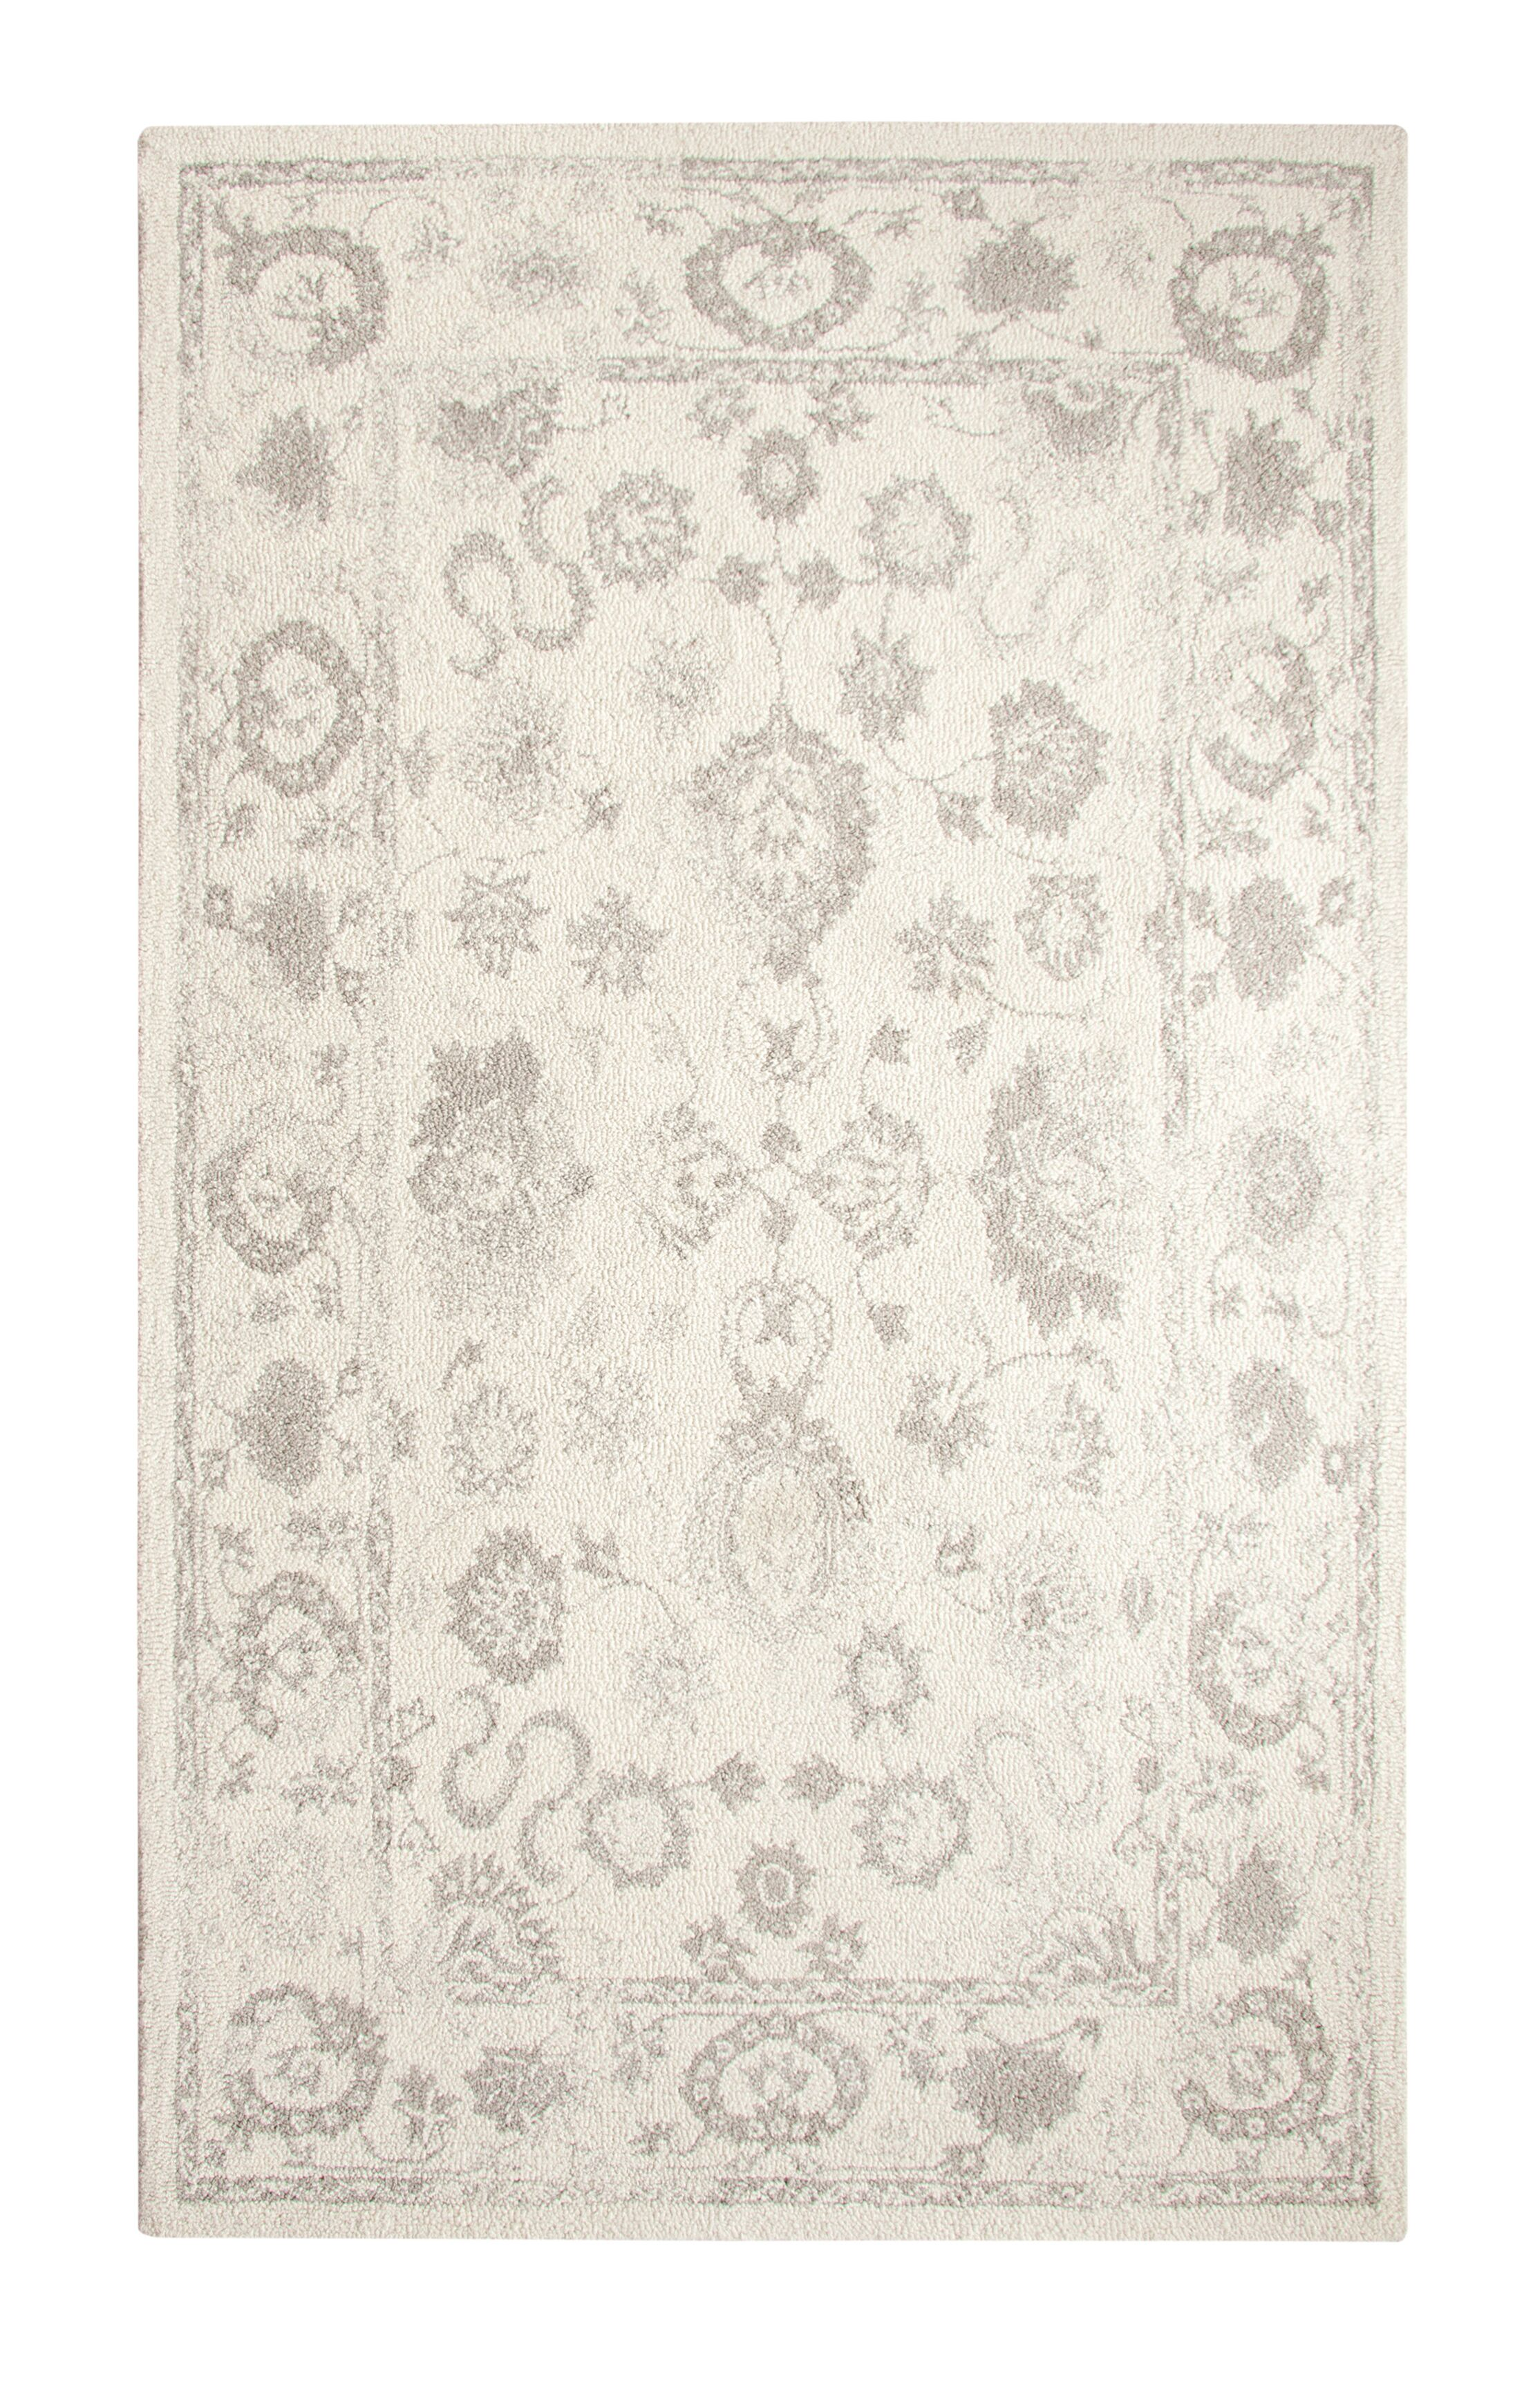 Montoya Ivory Hand Woven Area Rug Rug Size: Rectangle 8' x 11'